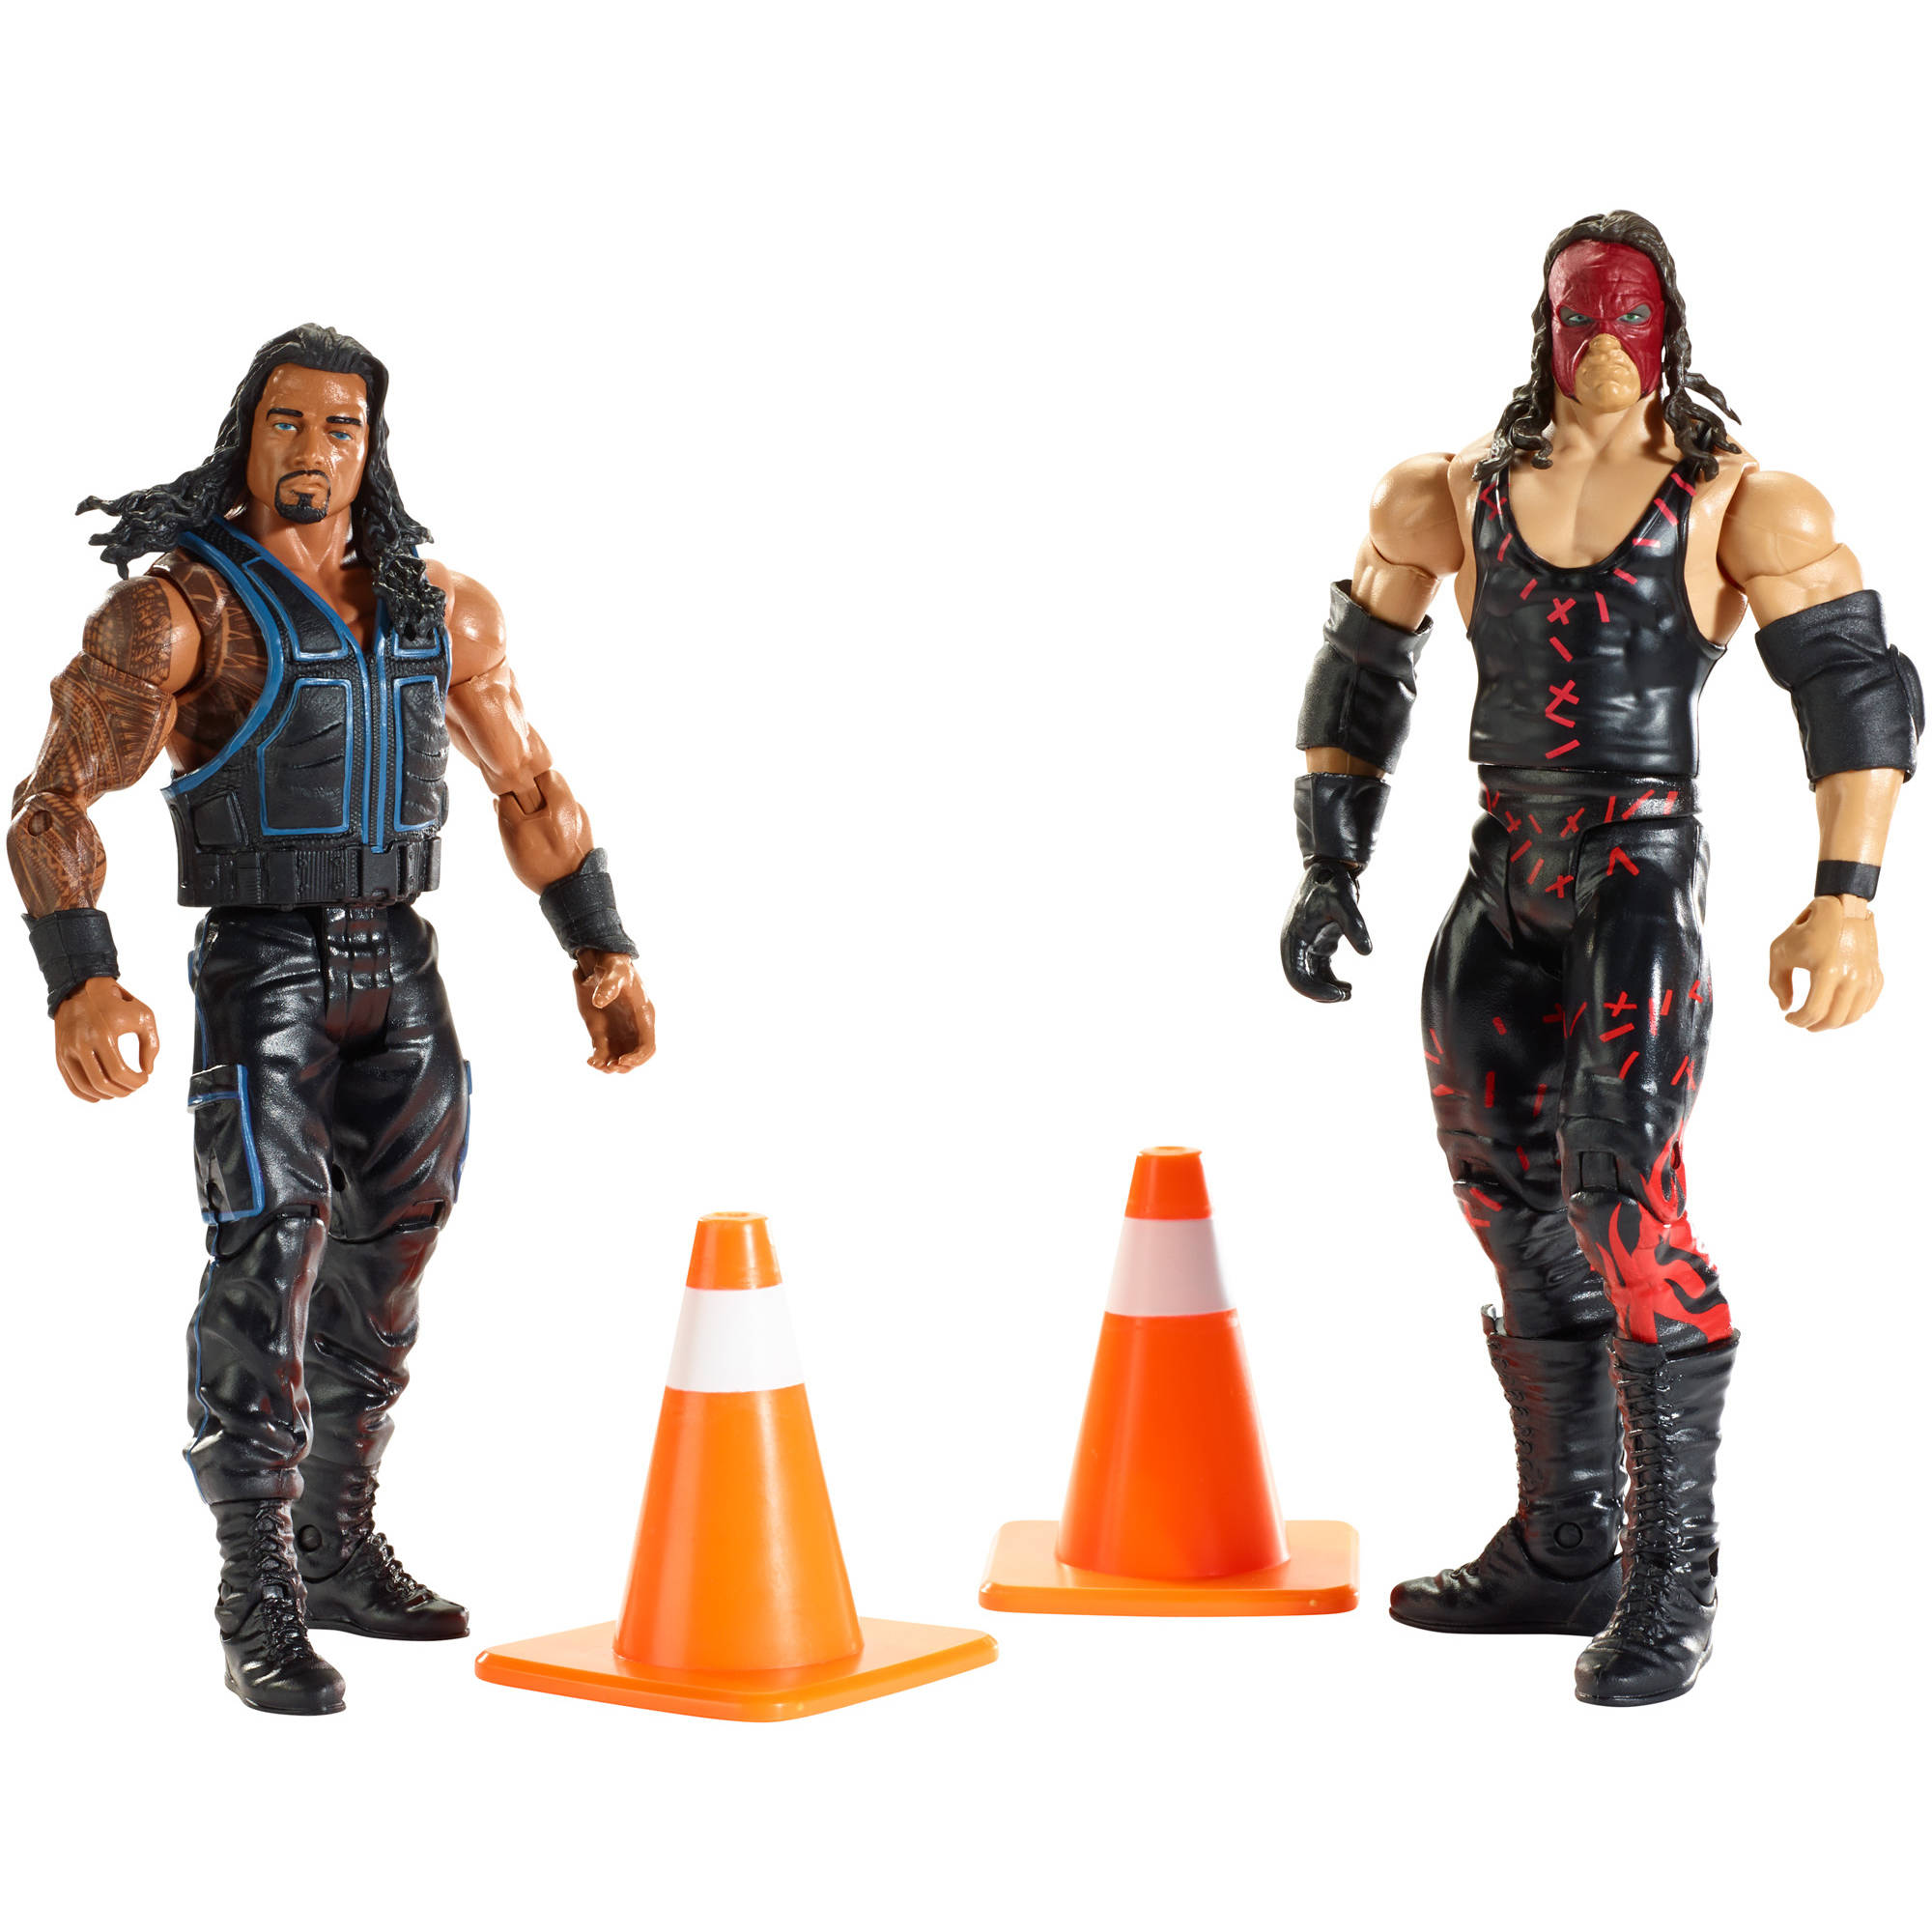 WWE Roman Reigns and Kane Action Figures, 2 Pack